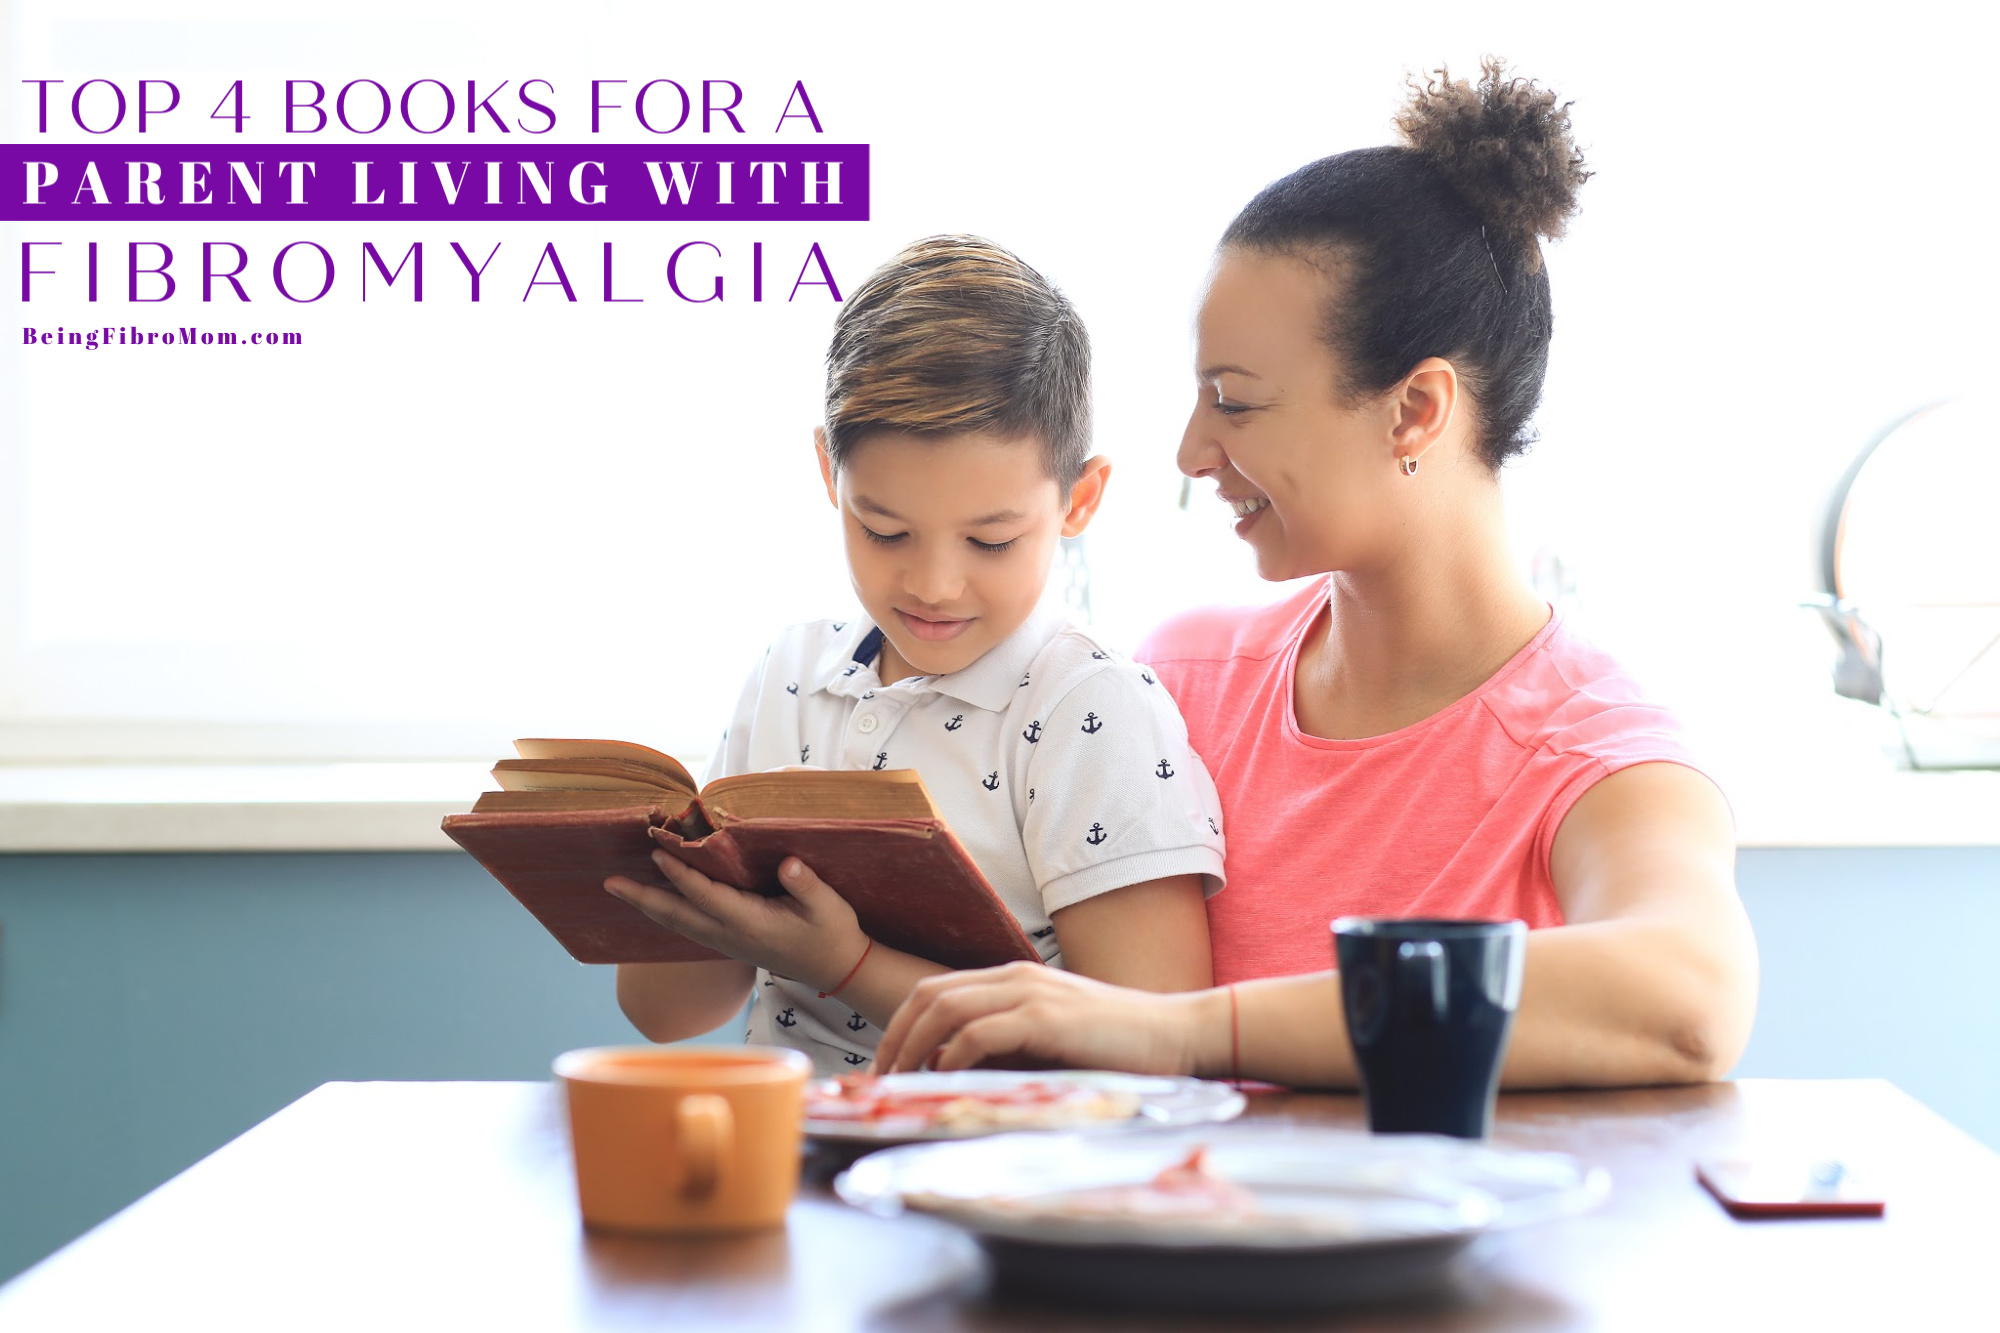 Top 4 Books for a Parent Living with Fibromyalgia